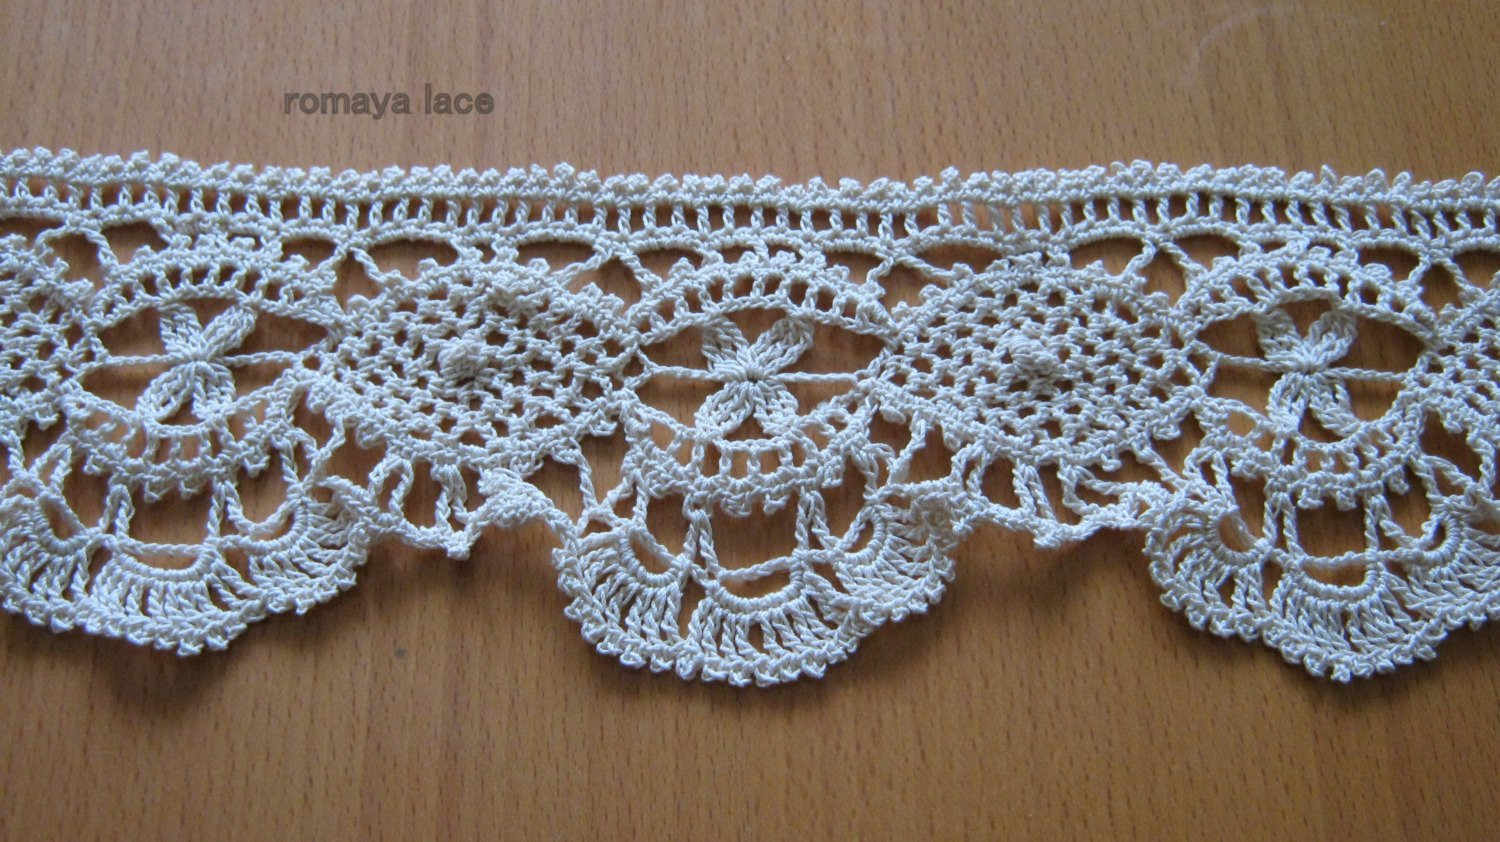 Crochet Lace Edging Awesome Irish Lace Crochet Trim Beelace Crochet Edging Of Charming 48 Images Crochet Lace Edging